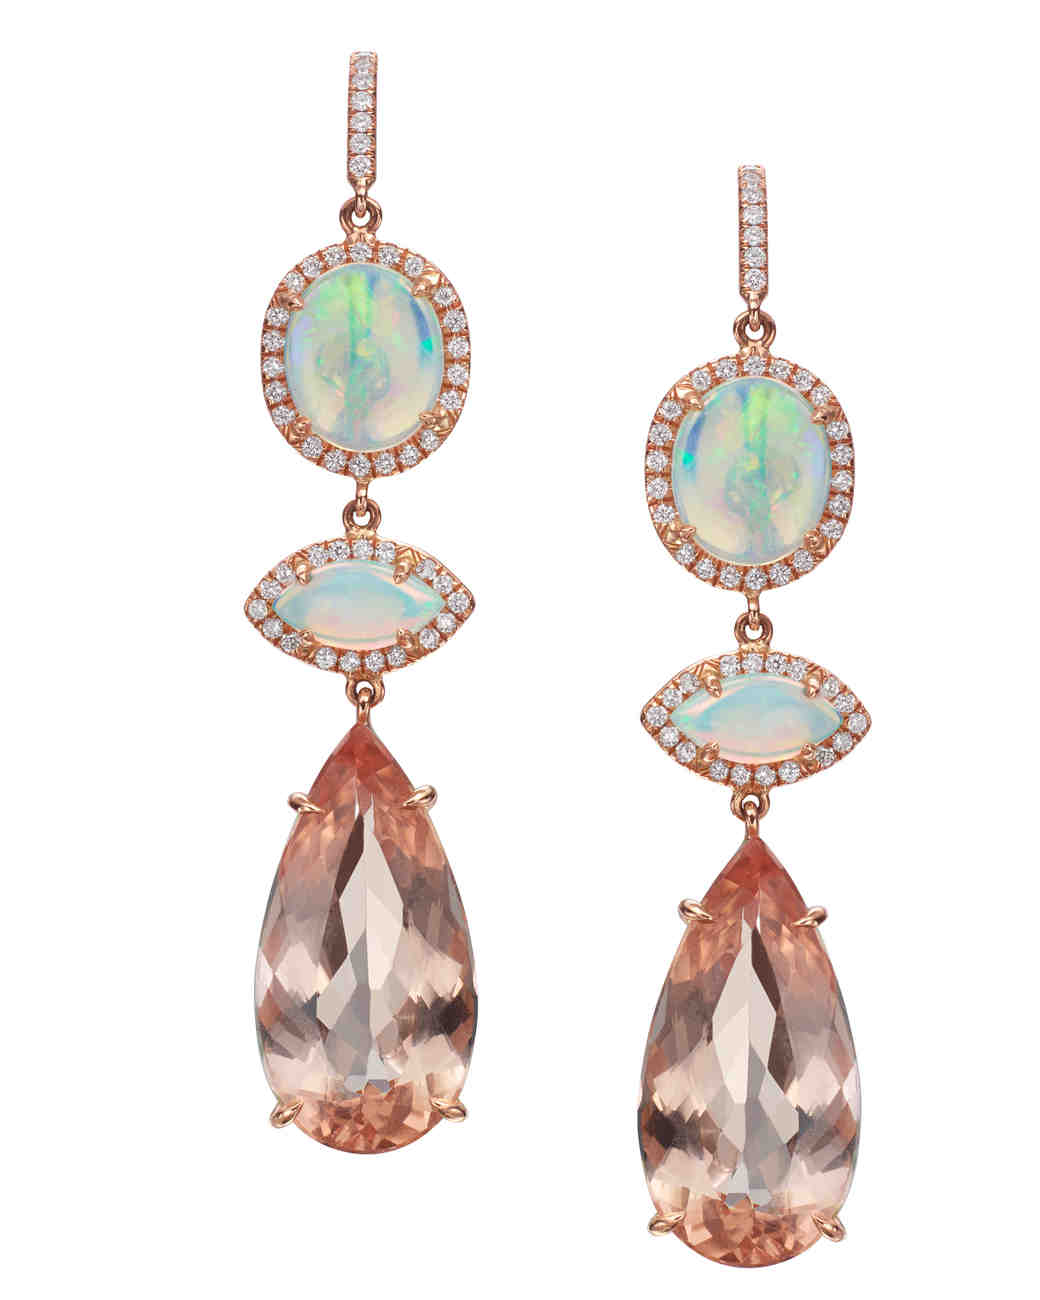 21 White Opal Jewelry Pieces That Will Make You Shine on Your